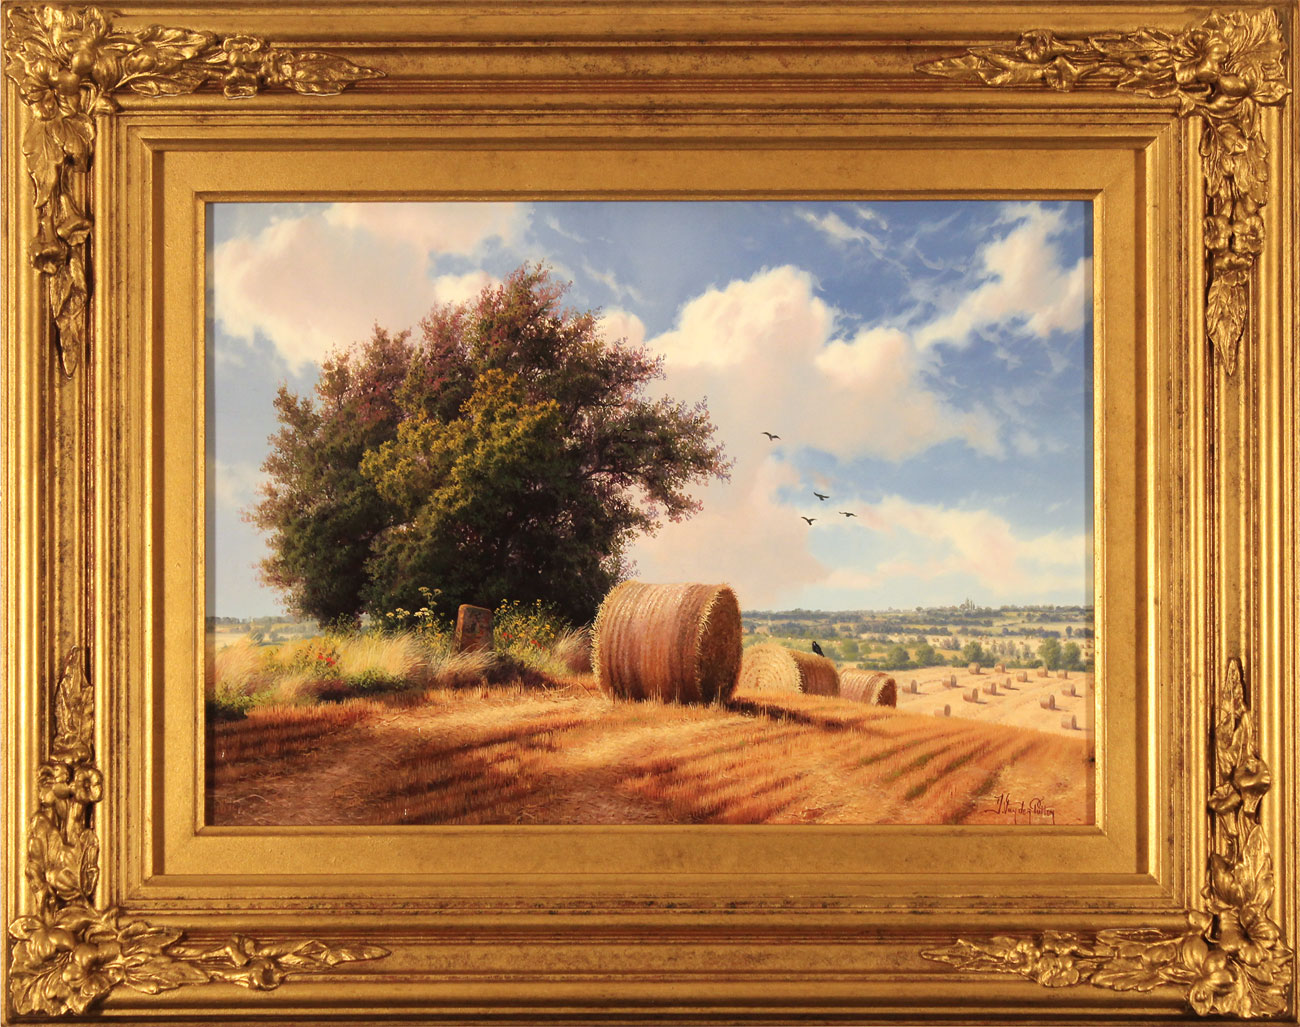 Daniel Van Der Putten, Original oil painting on panel, Summer on Weedon Hill. Click to enlarge